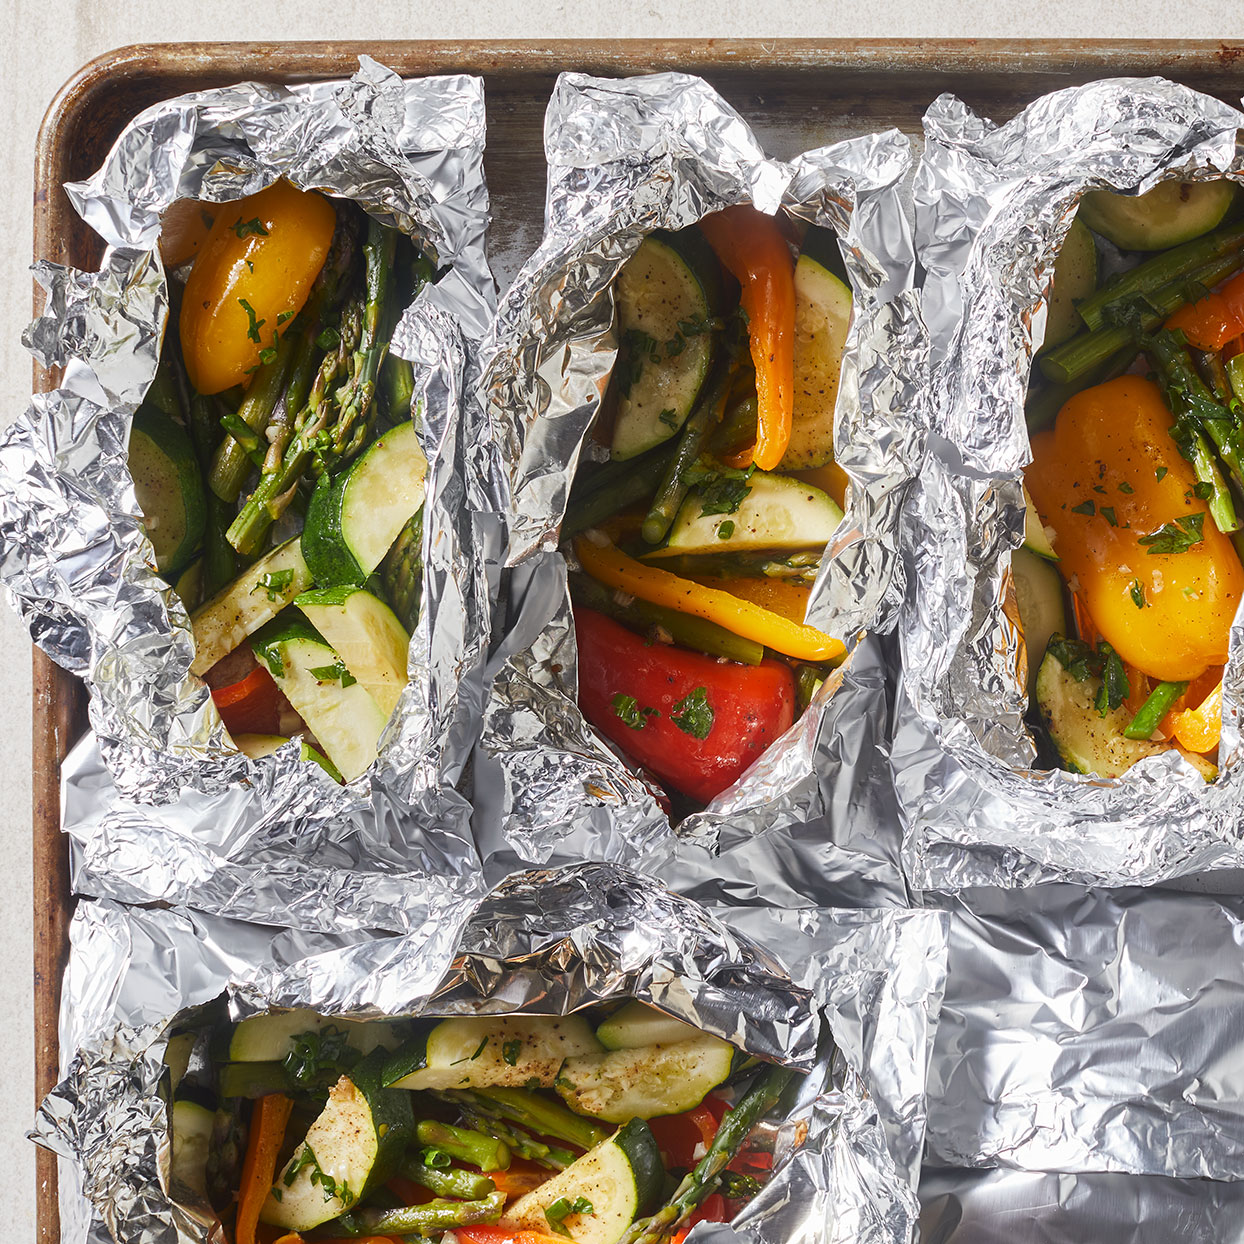 Grilled vegetables in foil is a great recipe to have on hand when camping or cooking over an open fire, but it's also nice on your backyard gas grill too. Here, we cook asparagus, mini peppers and zucchini together with a hint of garlic and butter. Delicious! Source: EatingWell.com, April 2020